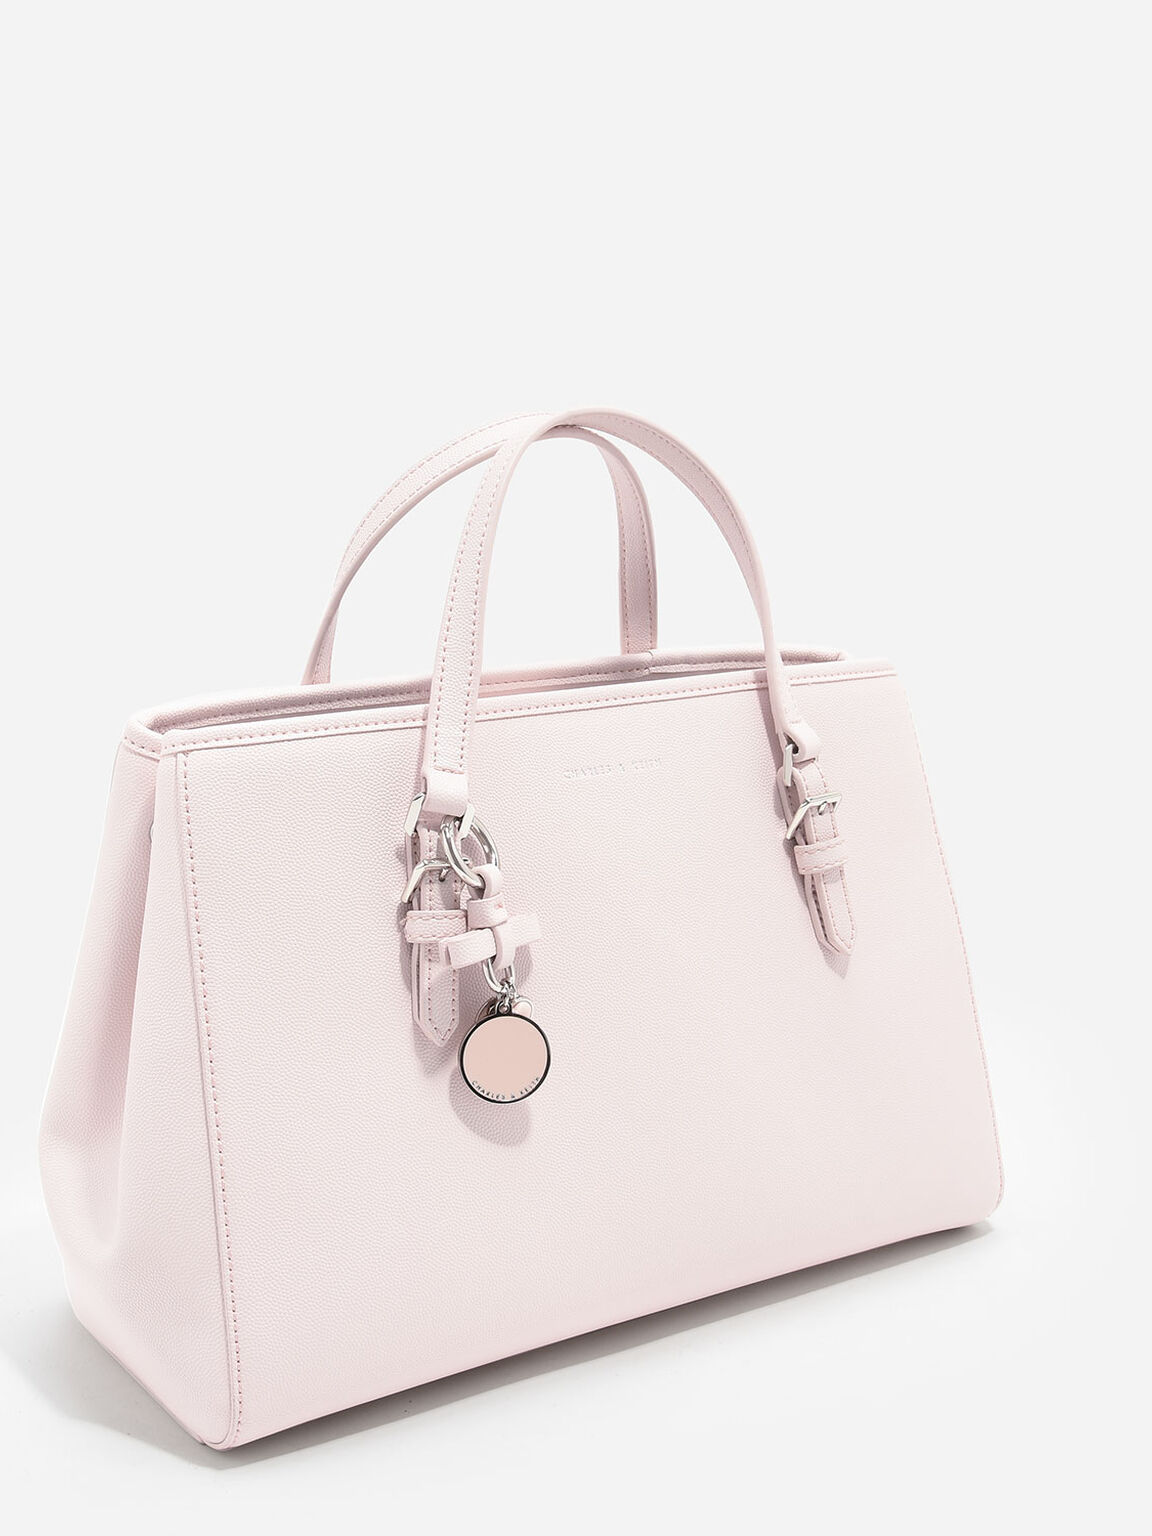 Bow Detail Tote Bag, Pink, hi-res